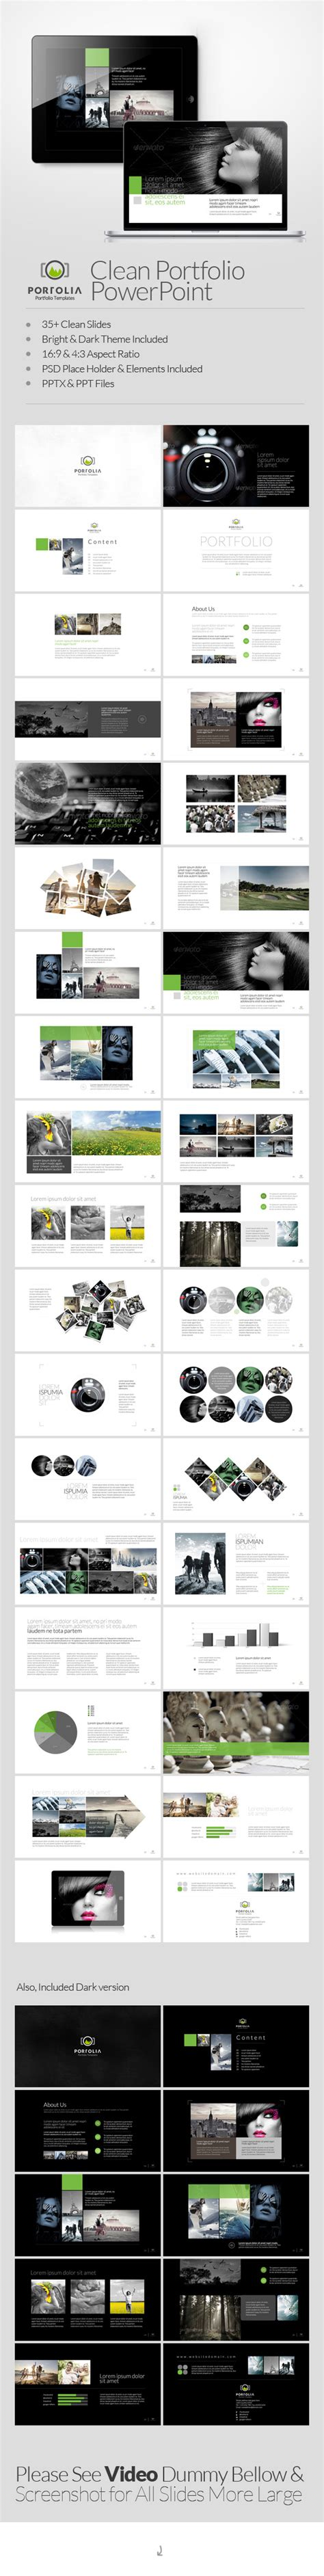 Business Powerpoint Template Nulled Impression Premium Corporate Presentation Nulled 187 Dolunai